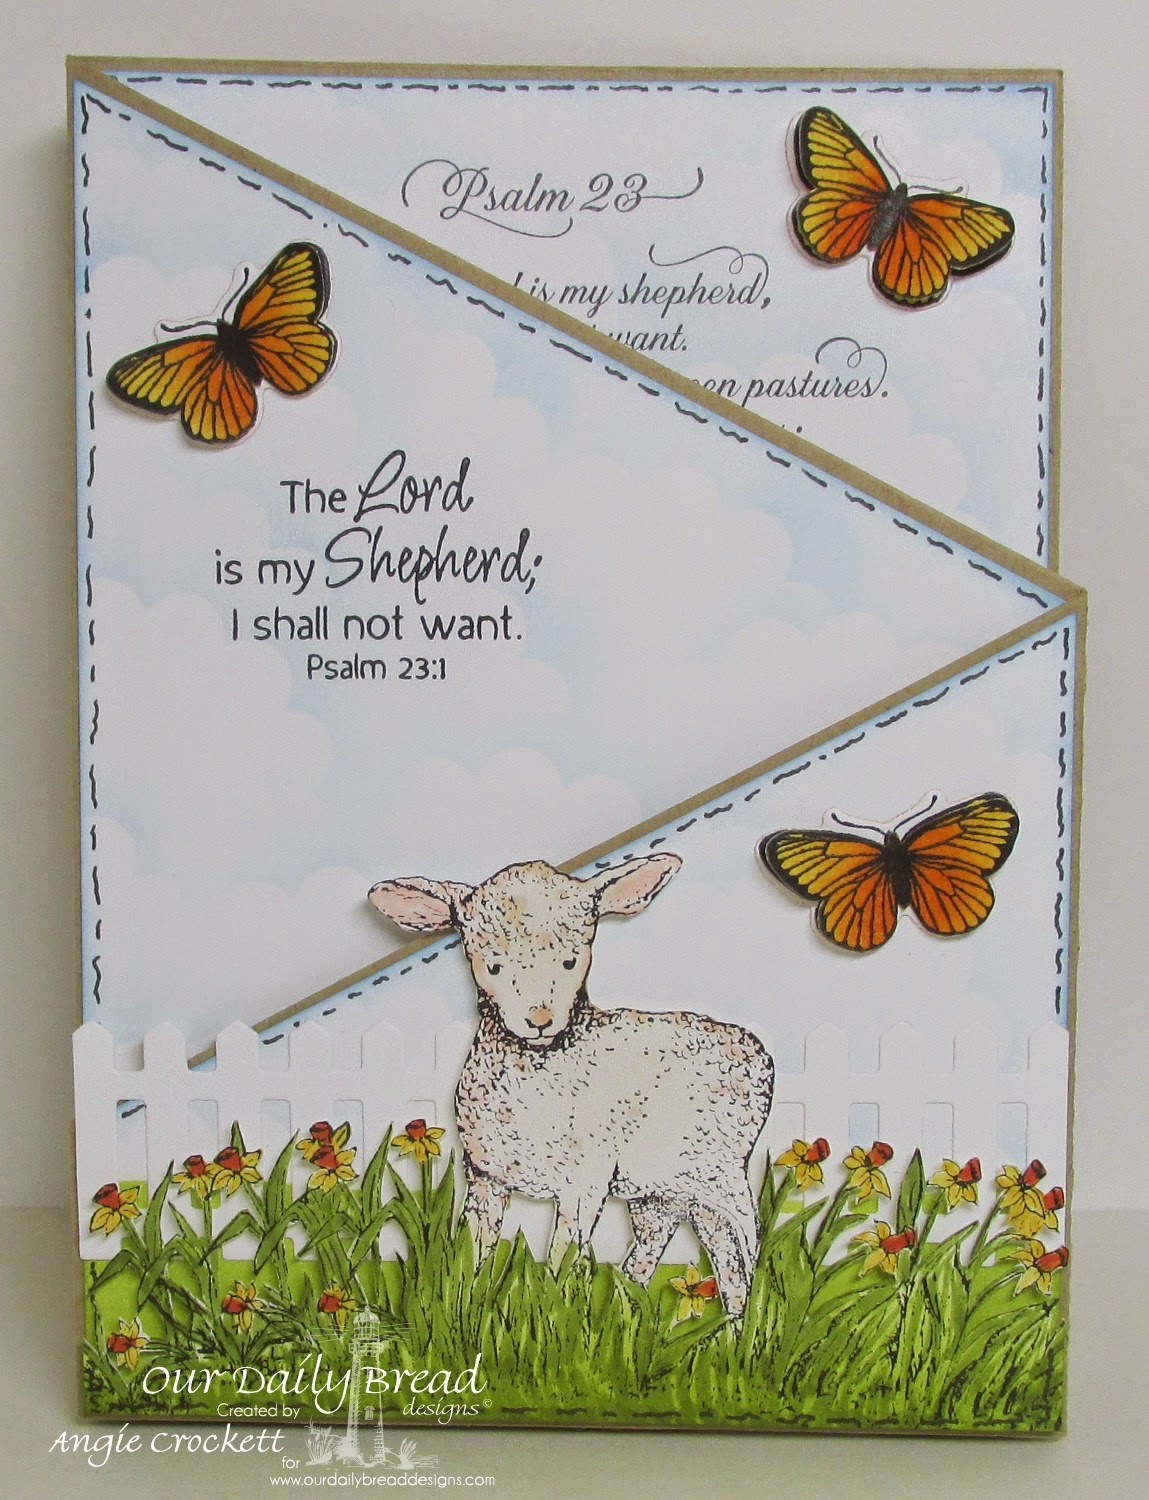 ODBD Psalm 23 Script, ODBD The Shepherd, ODBD Butterfly and Bugs, ODBD Custom Butterfly and Bugs Dies, ODBD Fence Die, ODBD Custom Clouds and Rain Dies, Card Designer Angie Crockett